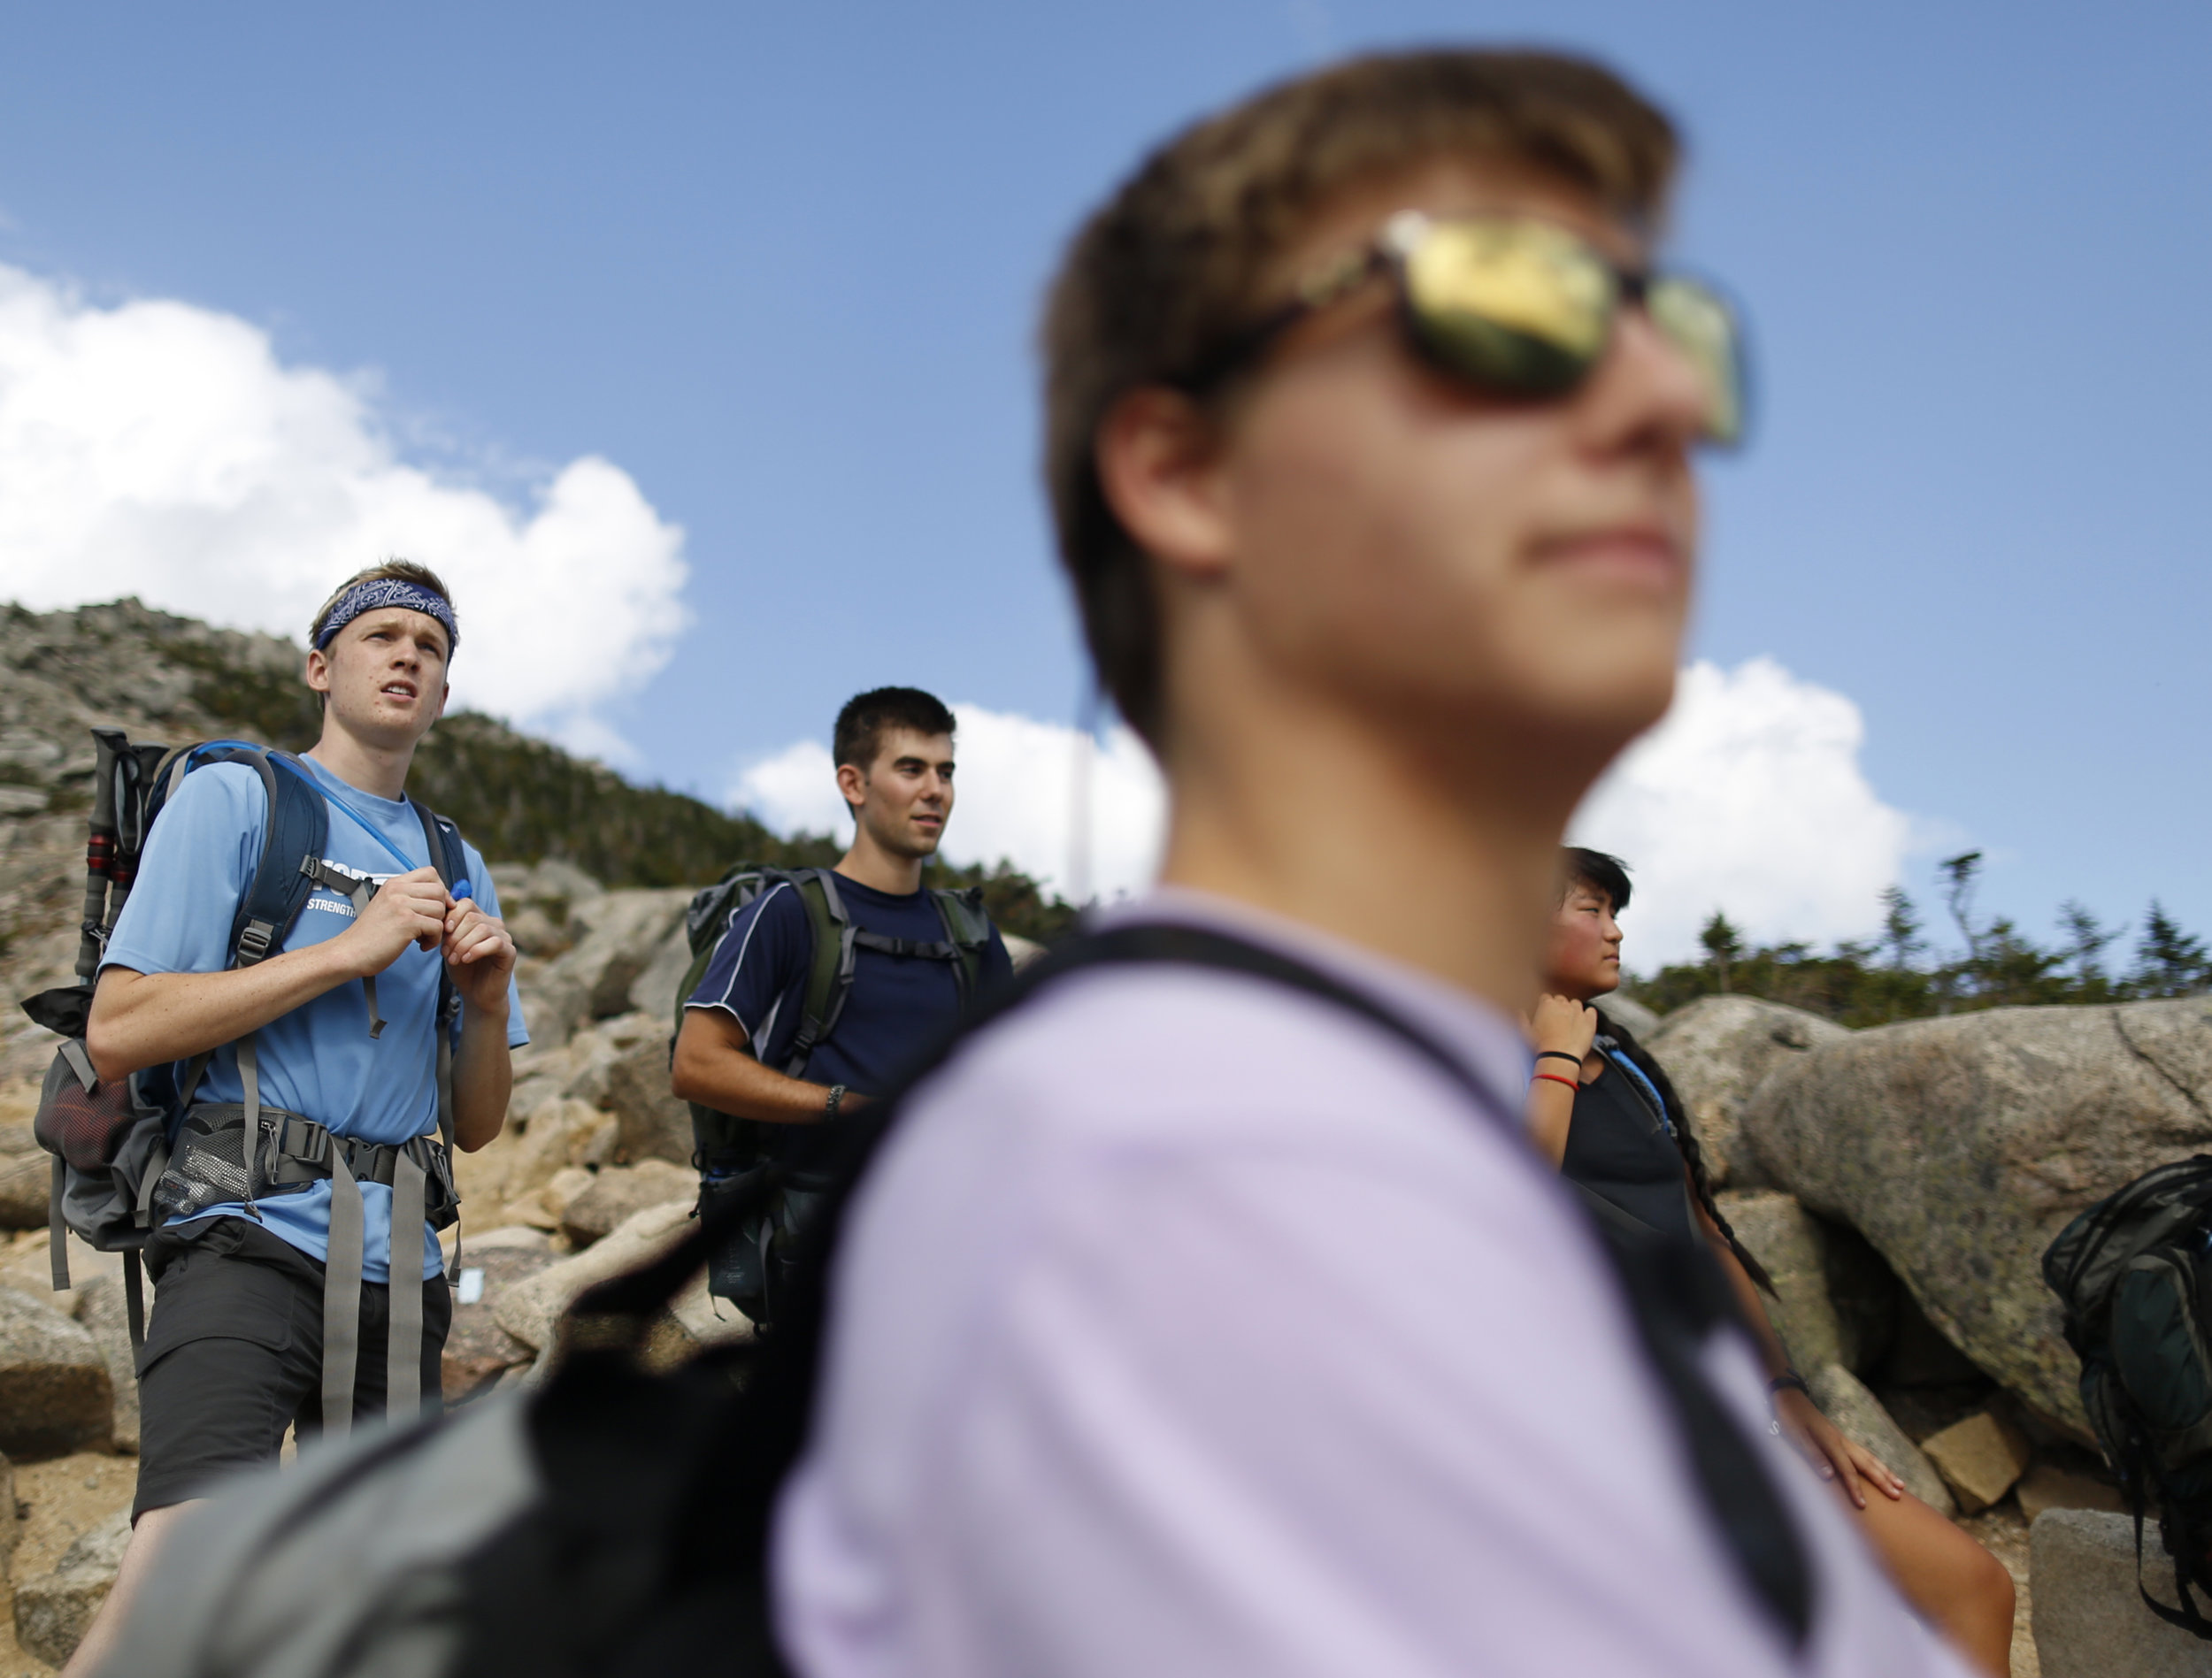 Josh Rines, Nate Moreau, Will Bolduc, and Monata Song, left to right, pause en route to the summit of South Turner Mountain to catch a glimpse of Mount Katahdin, the highest peak in Maine.